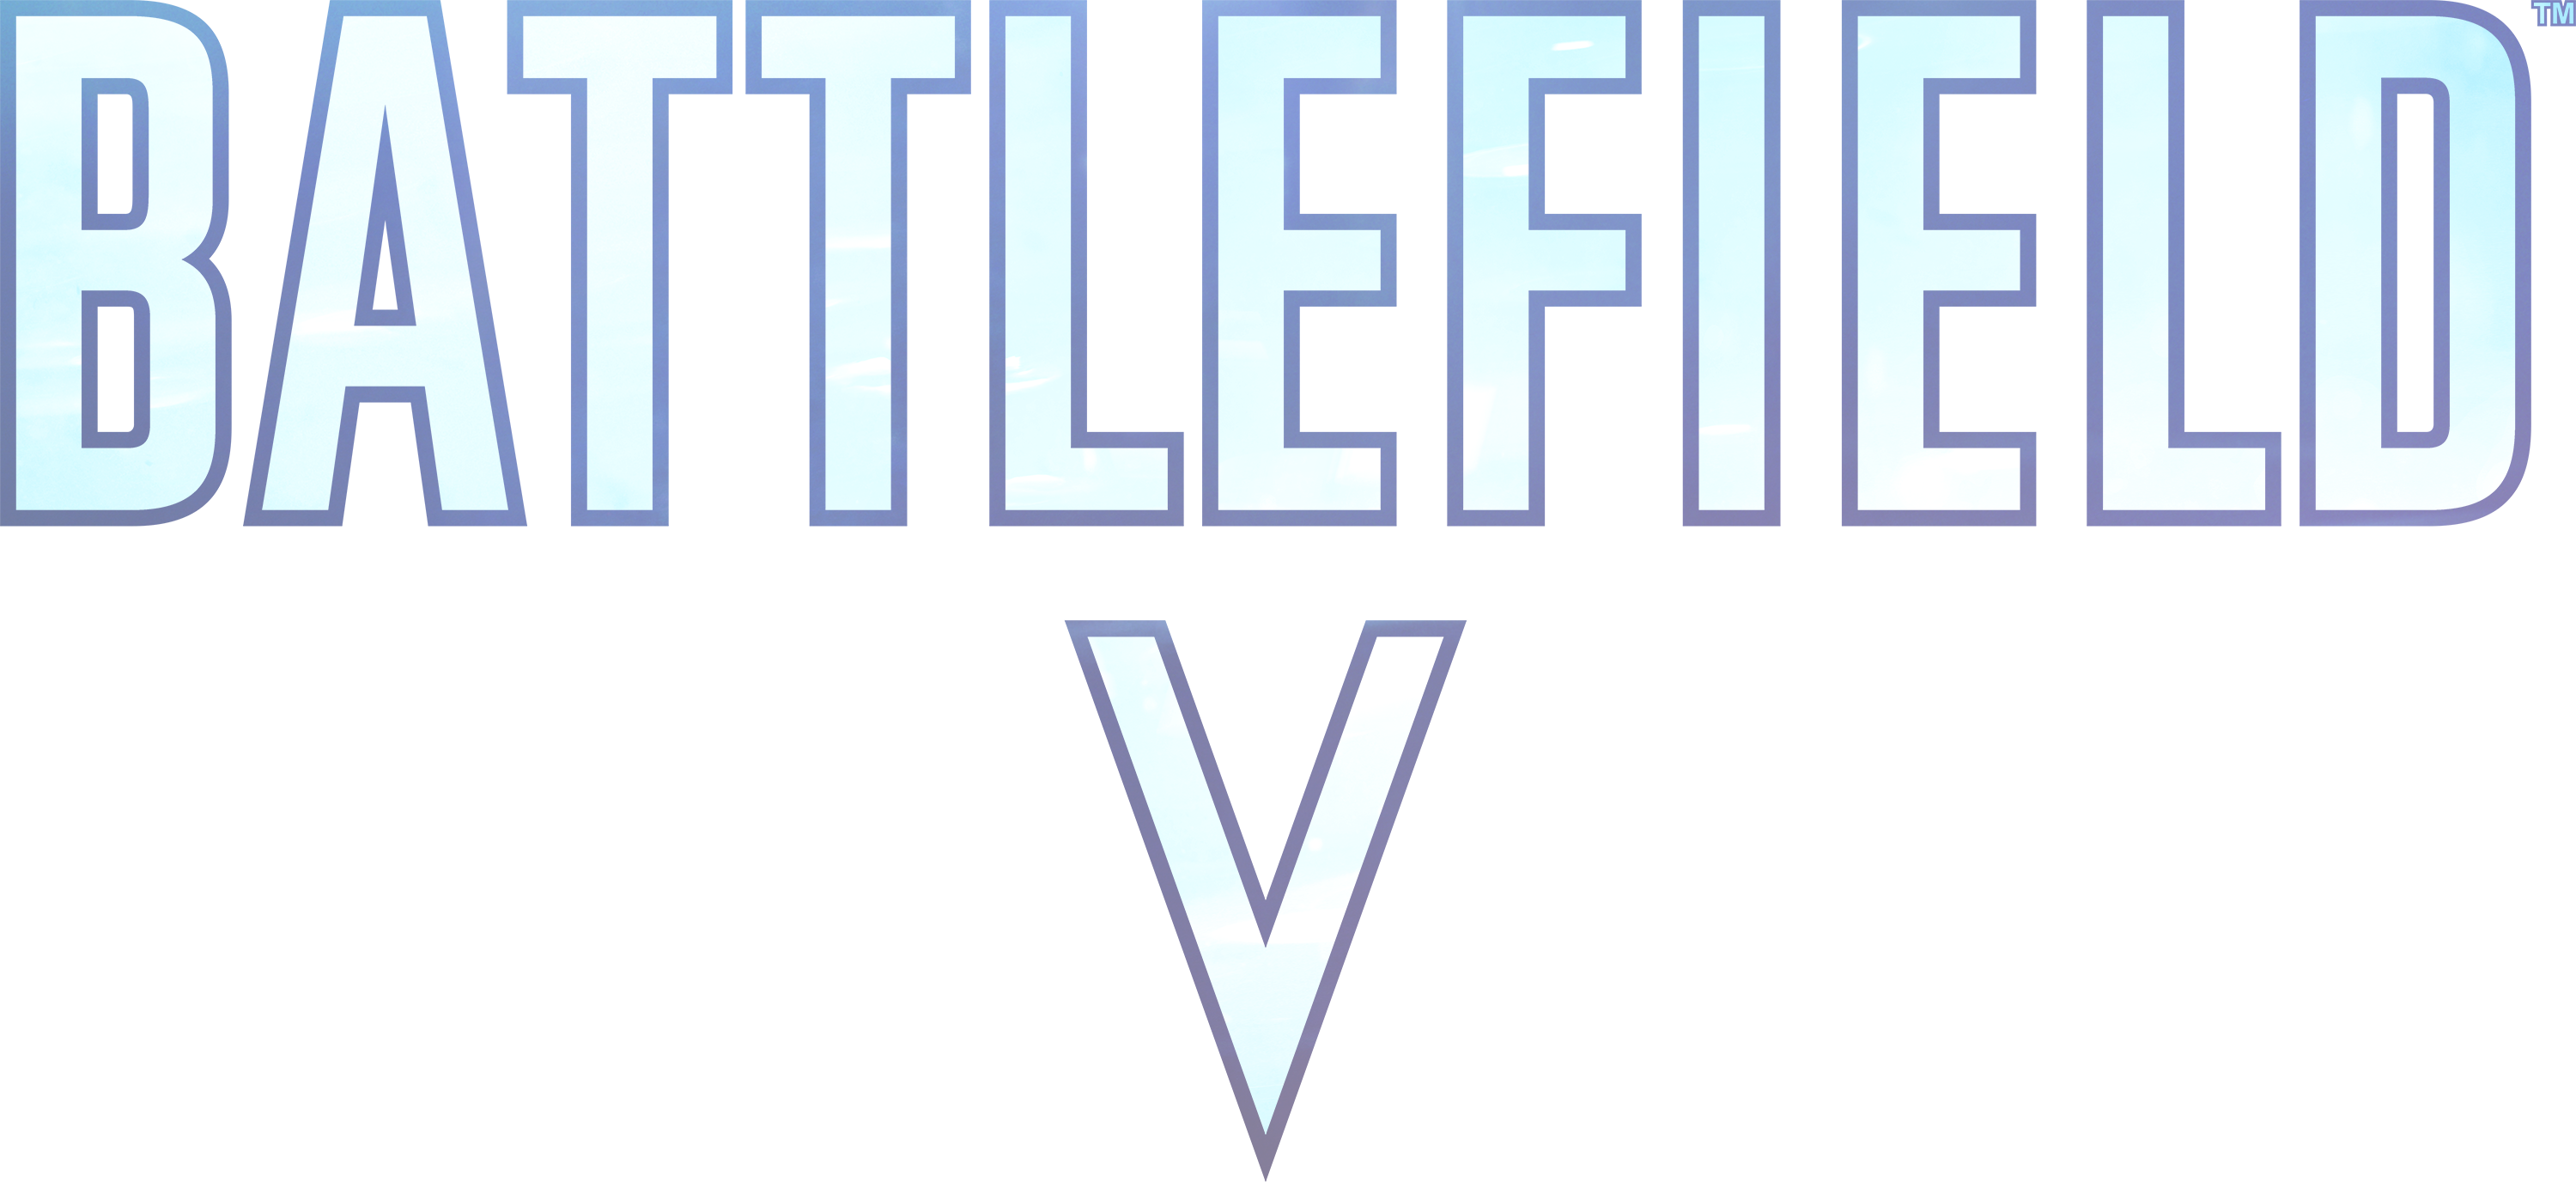 Battlefield 5 logo png. Dice storms back to